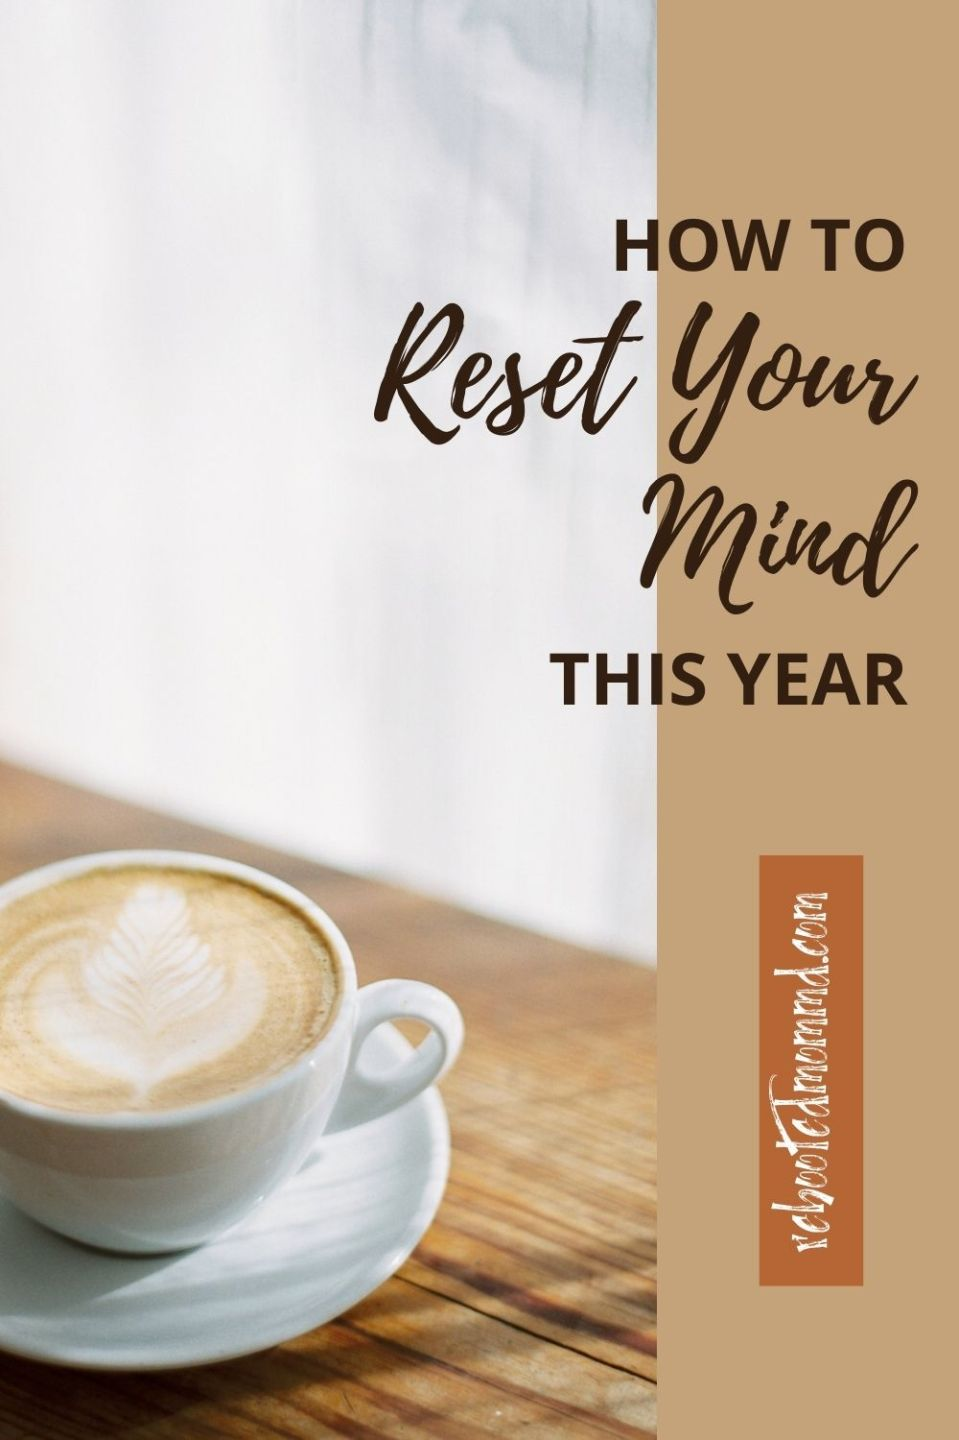 How to Reset Your Mindset